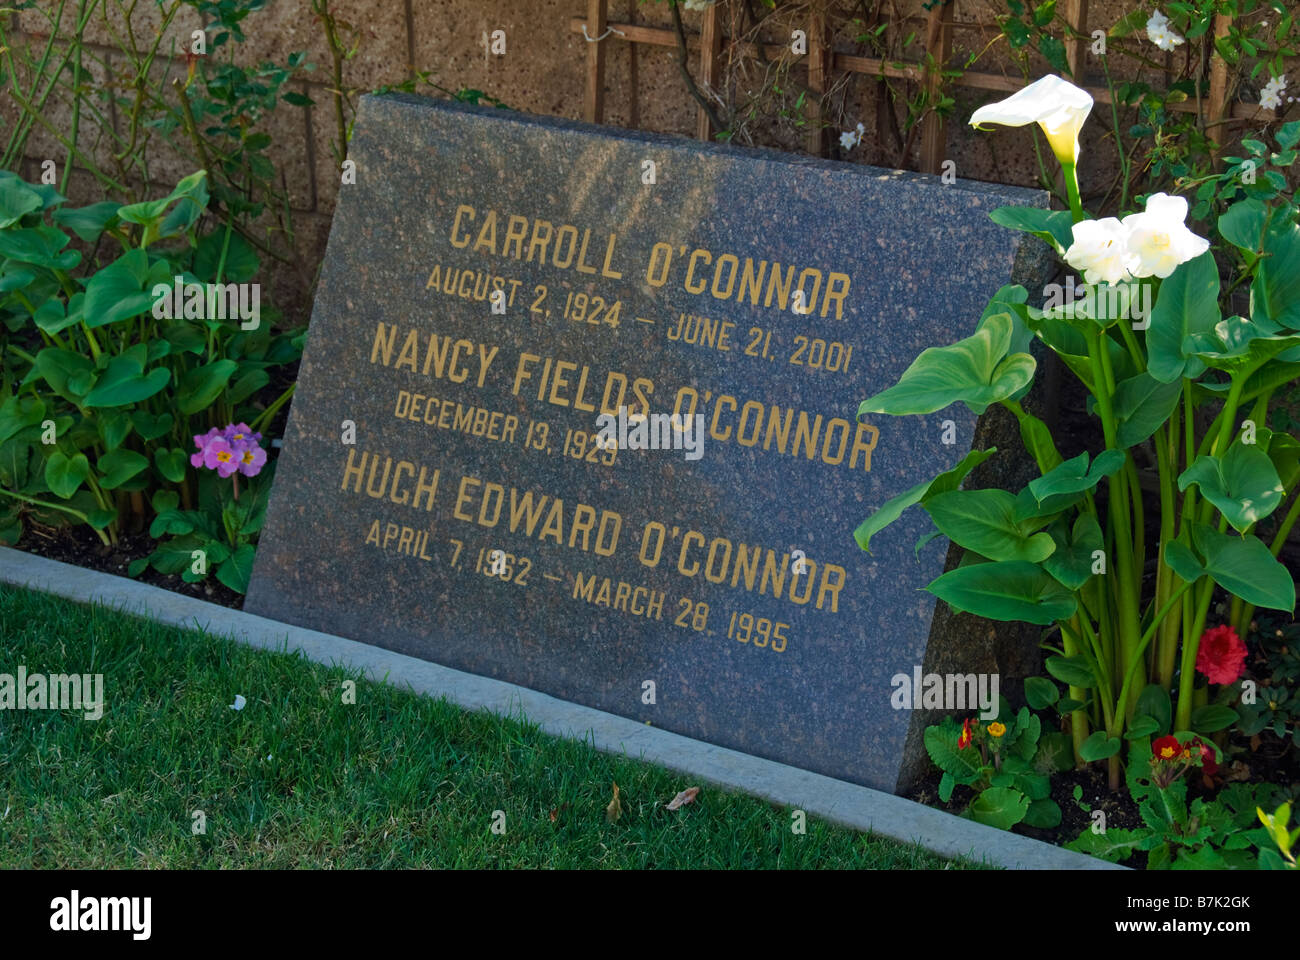 Carroll O'Conner Family Grave Hollywood Celebrity Graves Westwood Memorial Park Los Angeles CA cemetery Mortuary Stock Photo